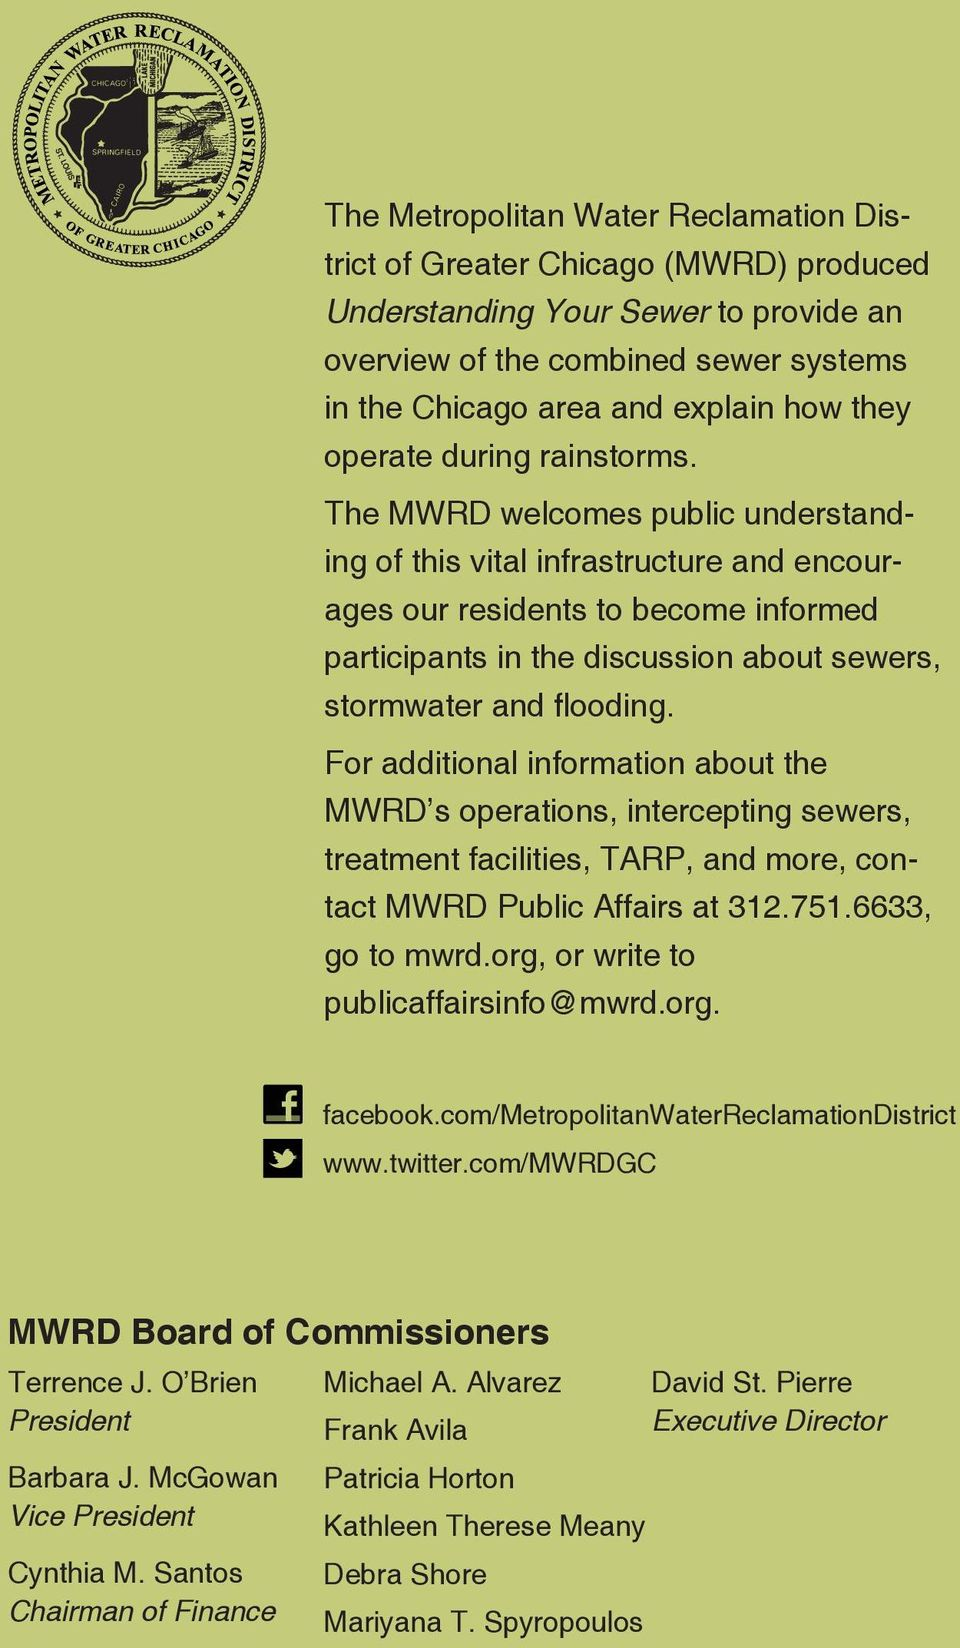 The MWRD welcomes public understanding of this vital infrastructure and encourages our residents to become informed participants in the discussion about sewers, stormwater and flooding.